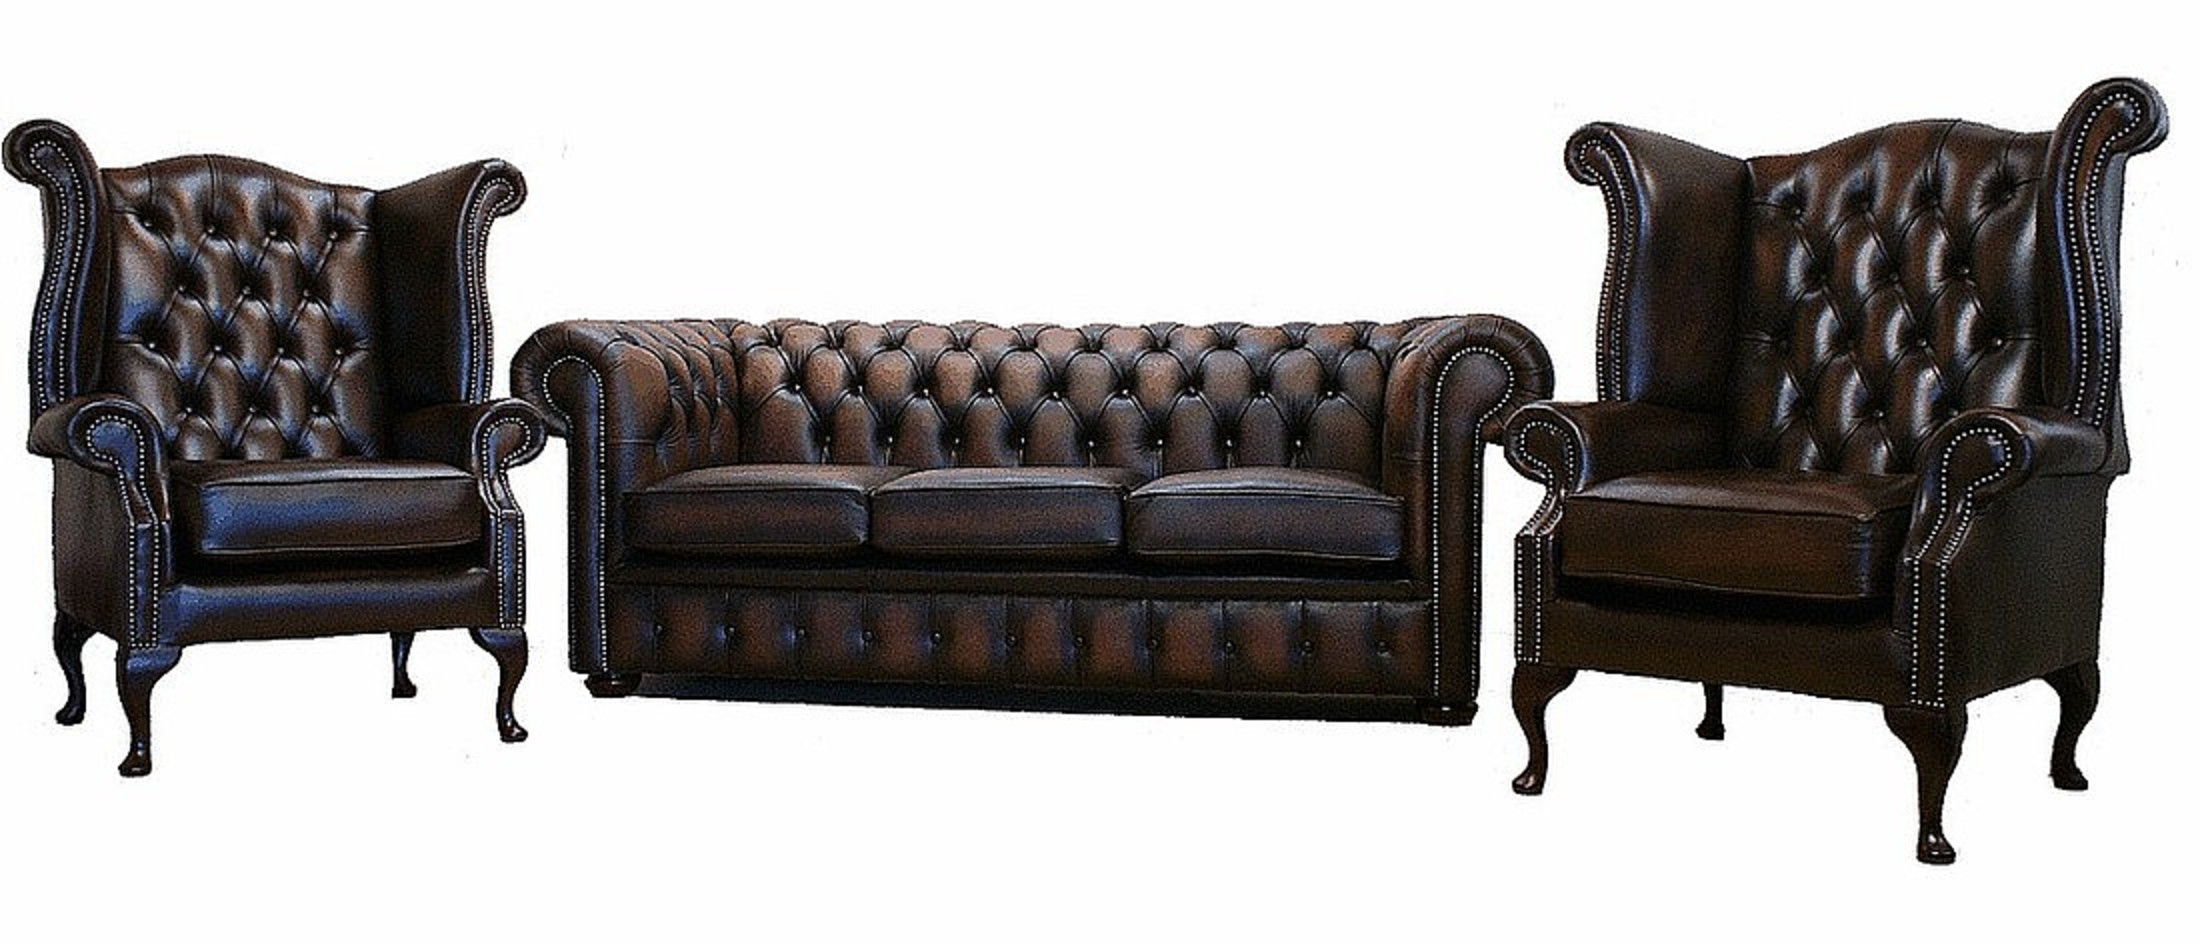 sofas direct from factory uk brown tweed sofa chesterfield leather suite manufactured offer antique